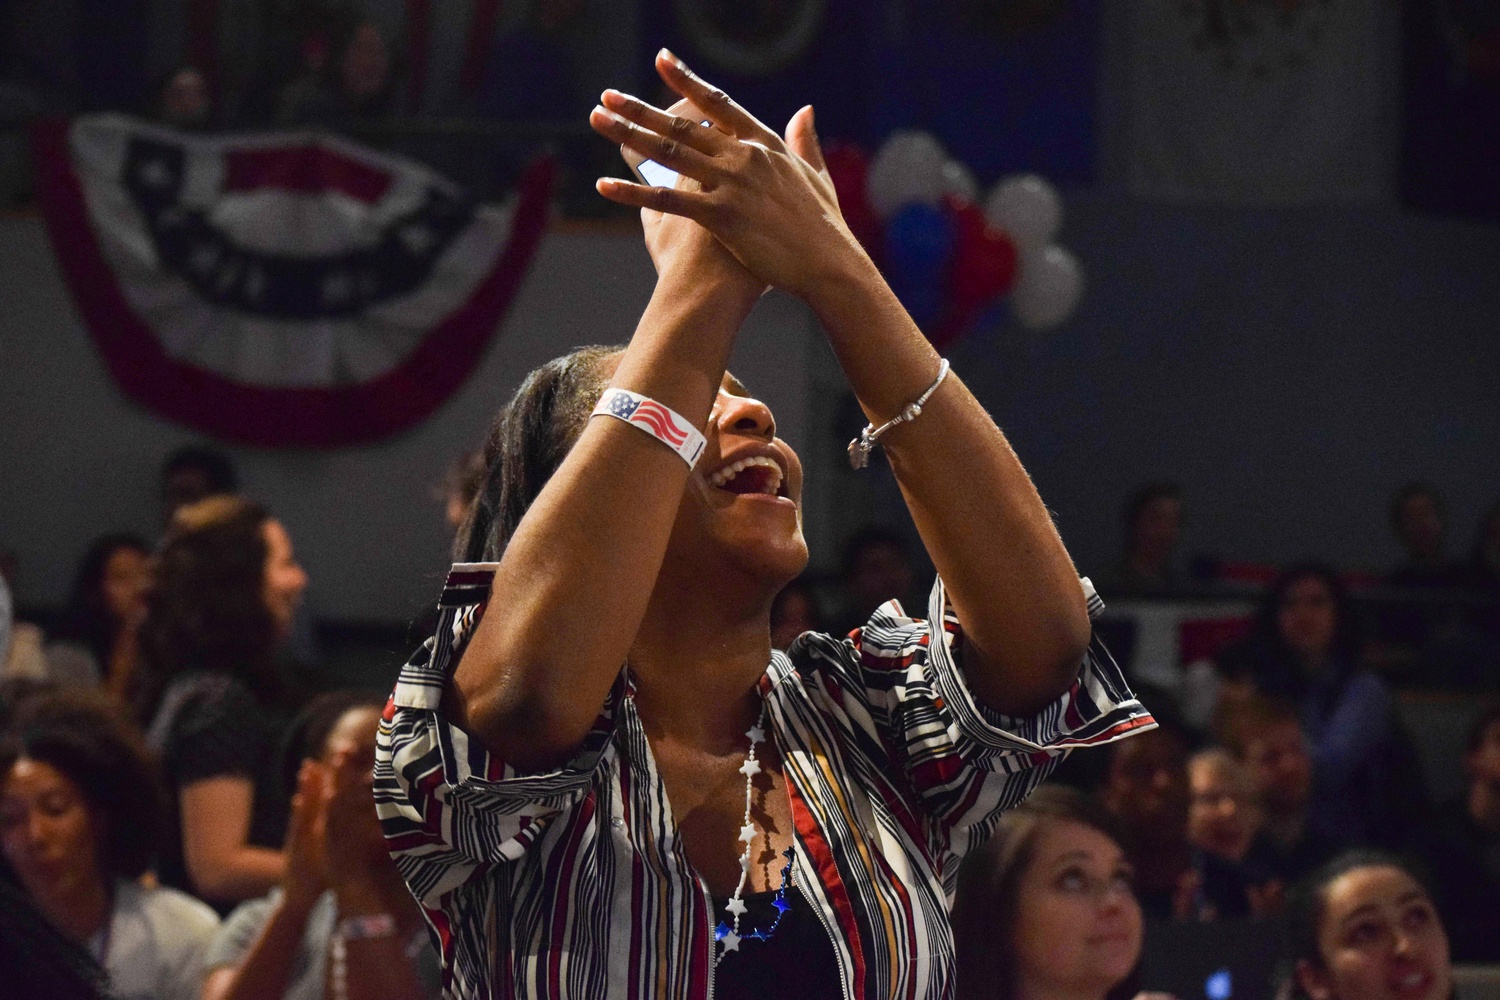 Sade A. Abraham, a Graduate School of Education alum, cheers upon hearing CNN report that Texas U.S. Senate candidate Beto O'Rourke was pulling ahead. O'Rourke ultimately lost to incumbent Ted Cruz.